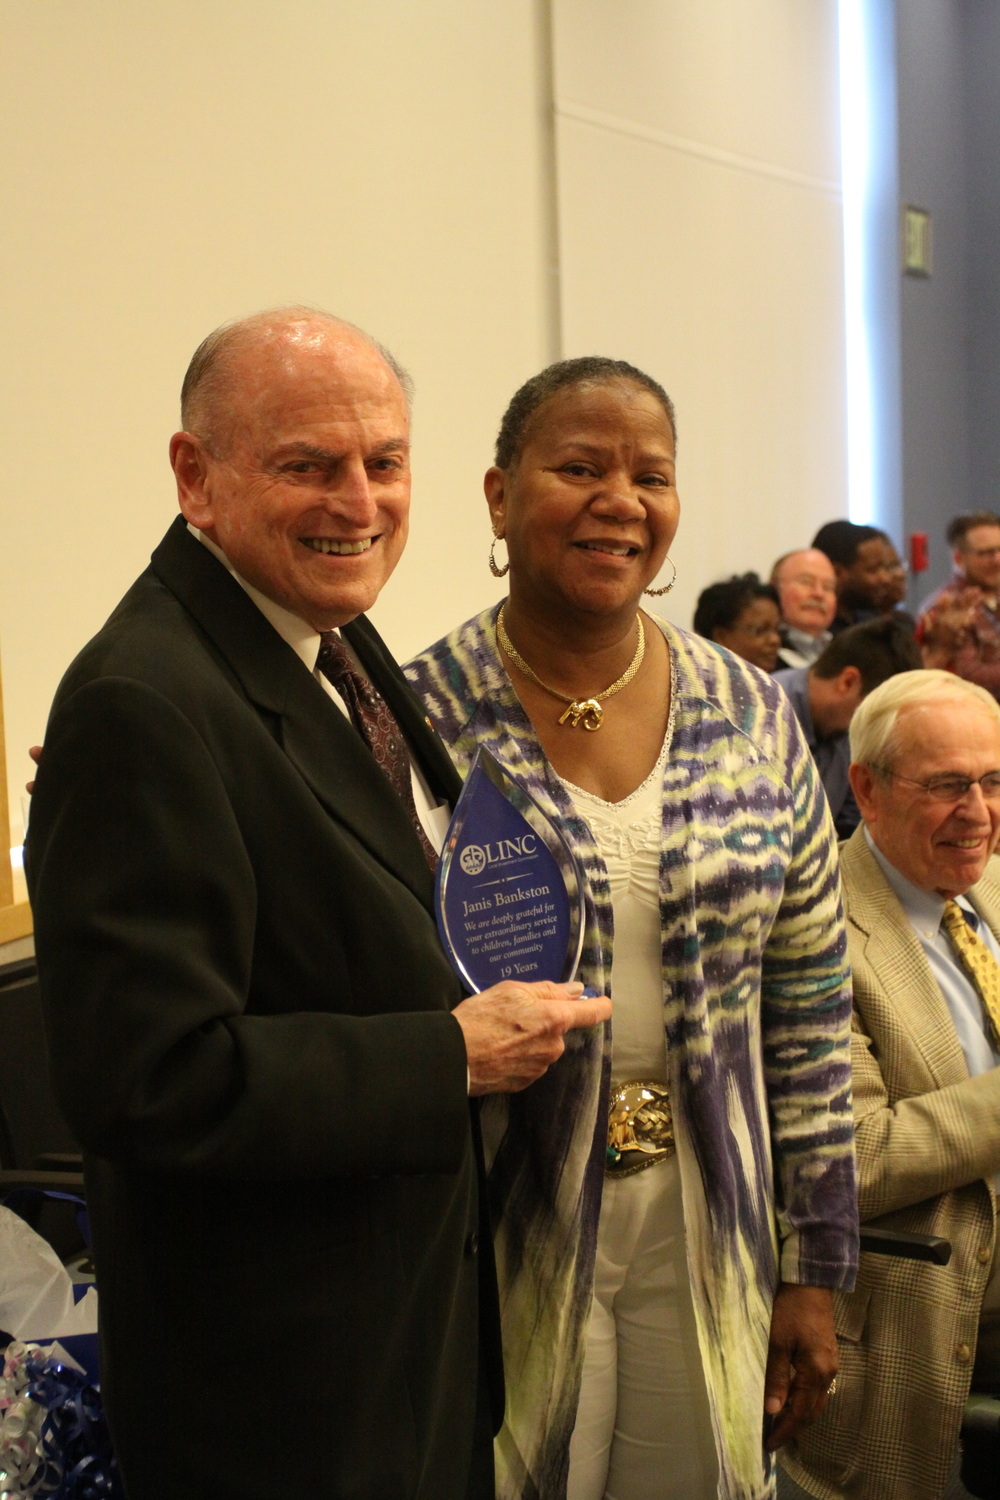 Janis Bankston recognized by Bert Berkley